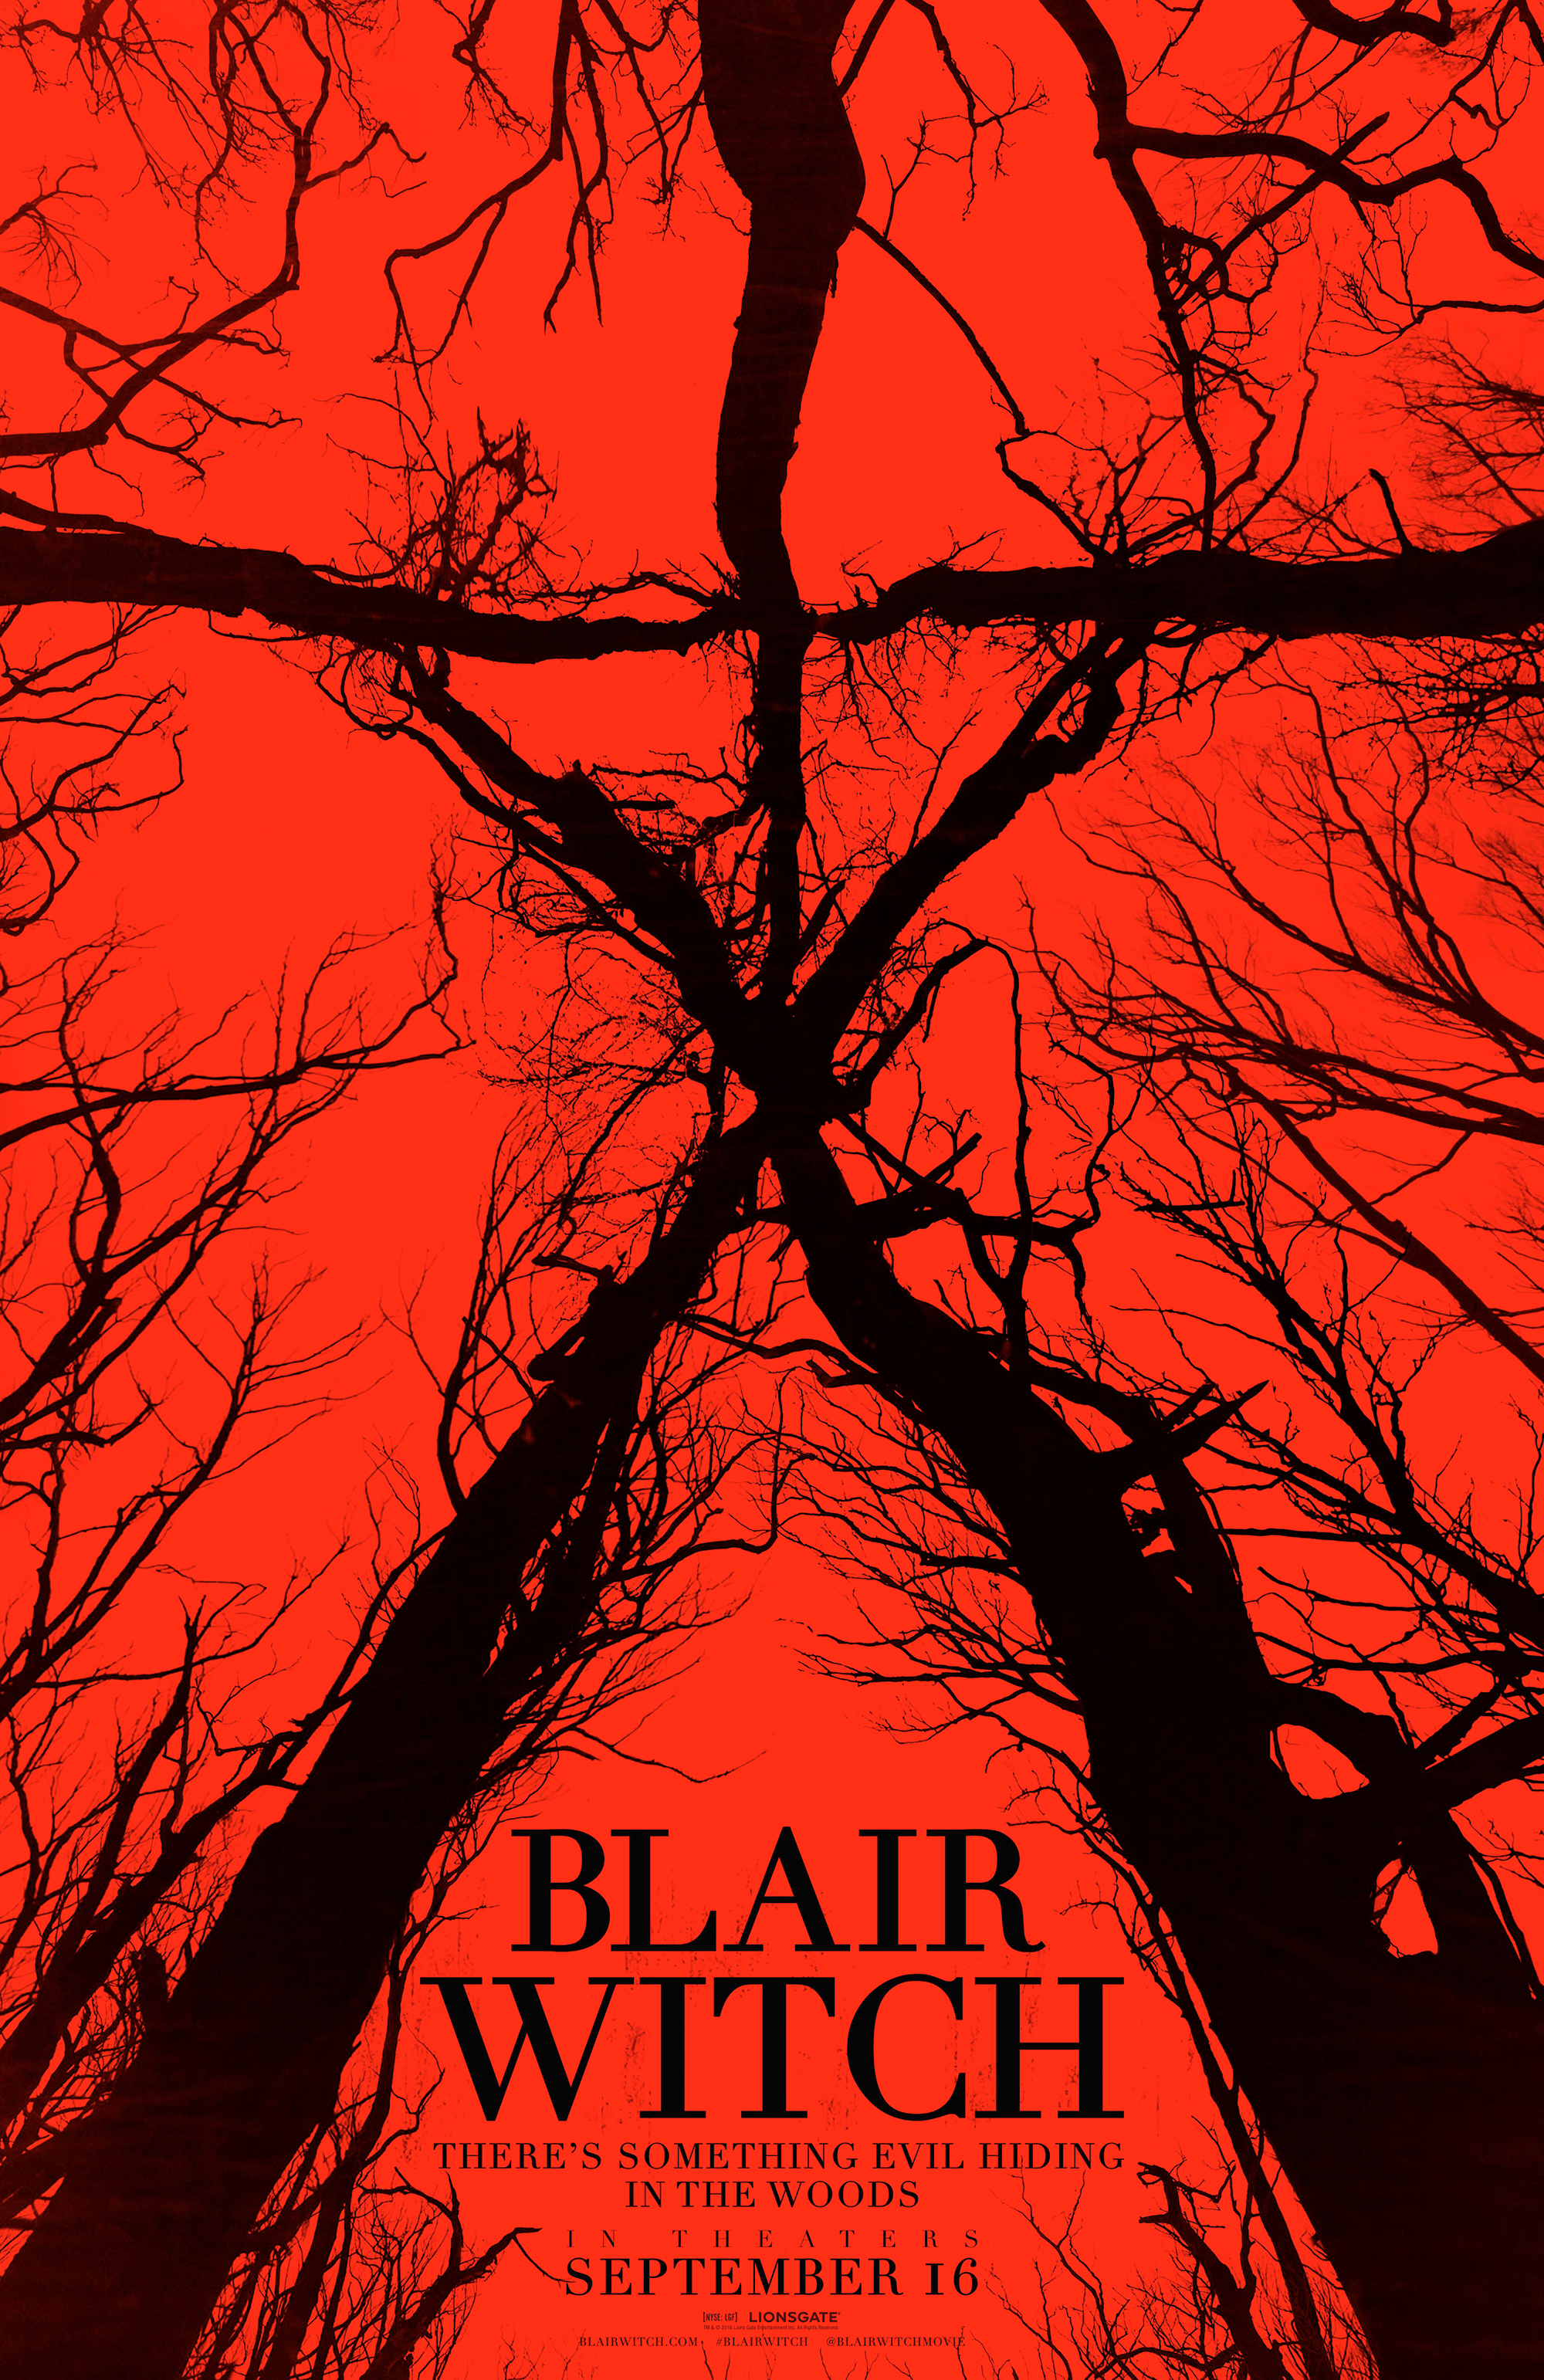 Watch Creepy First Trailer for Surprise 'Blair Witch' Sequel